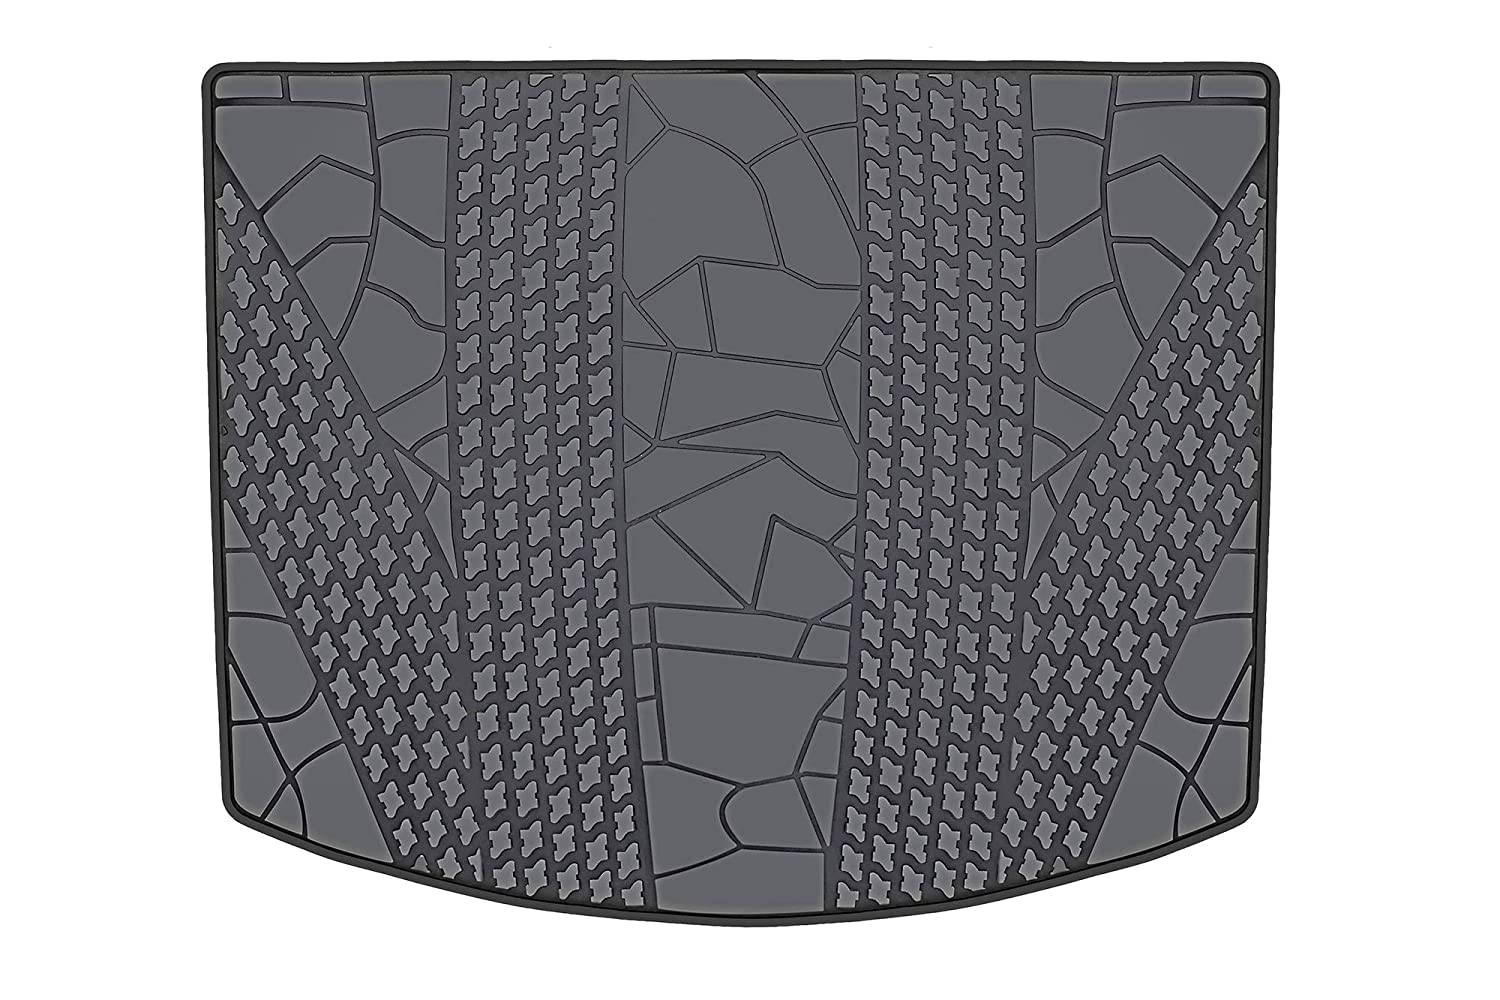 Heavy Duty /& Odorless HD-Mart Cargo Liners Custom Fit Ford Escape 2012-2013-2014-2015-2016-2017-2018-2019 Trunk Mats Black Rubber for All Weather